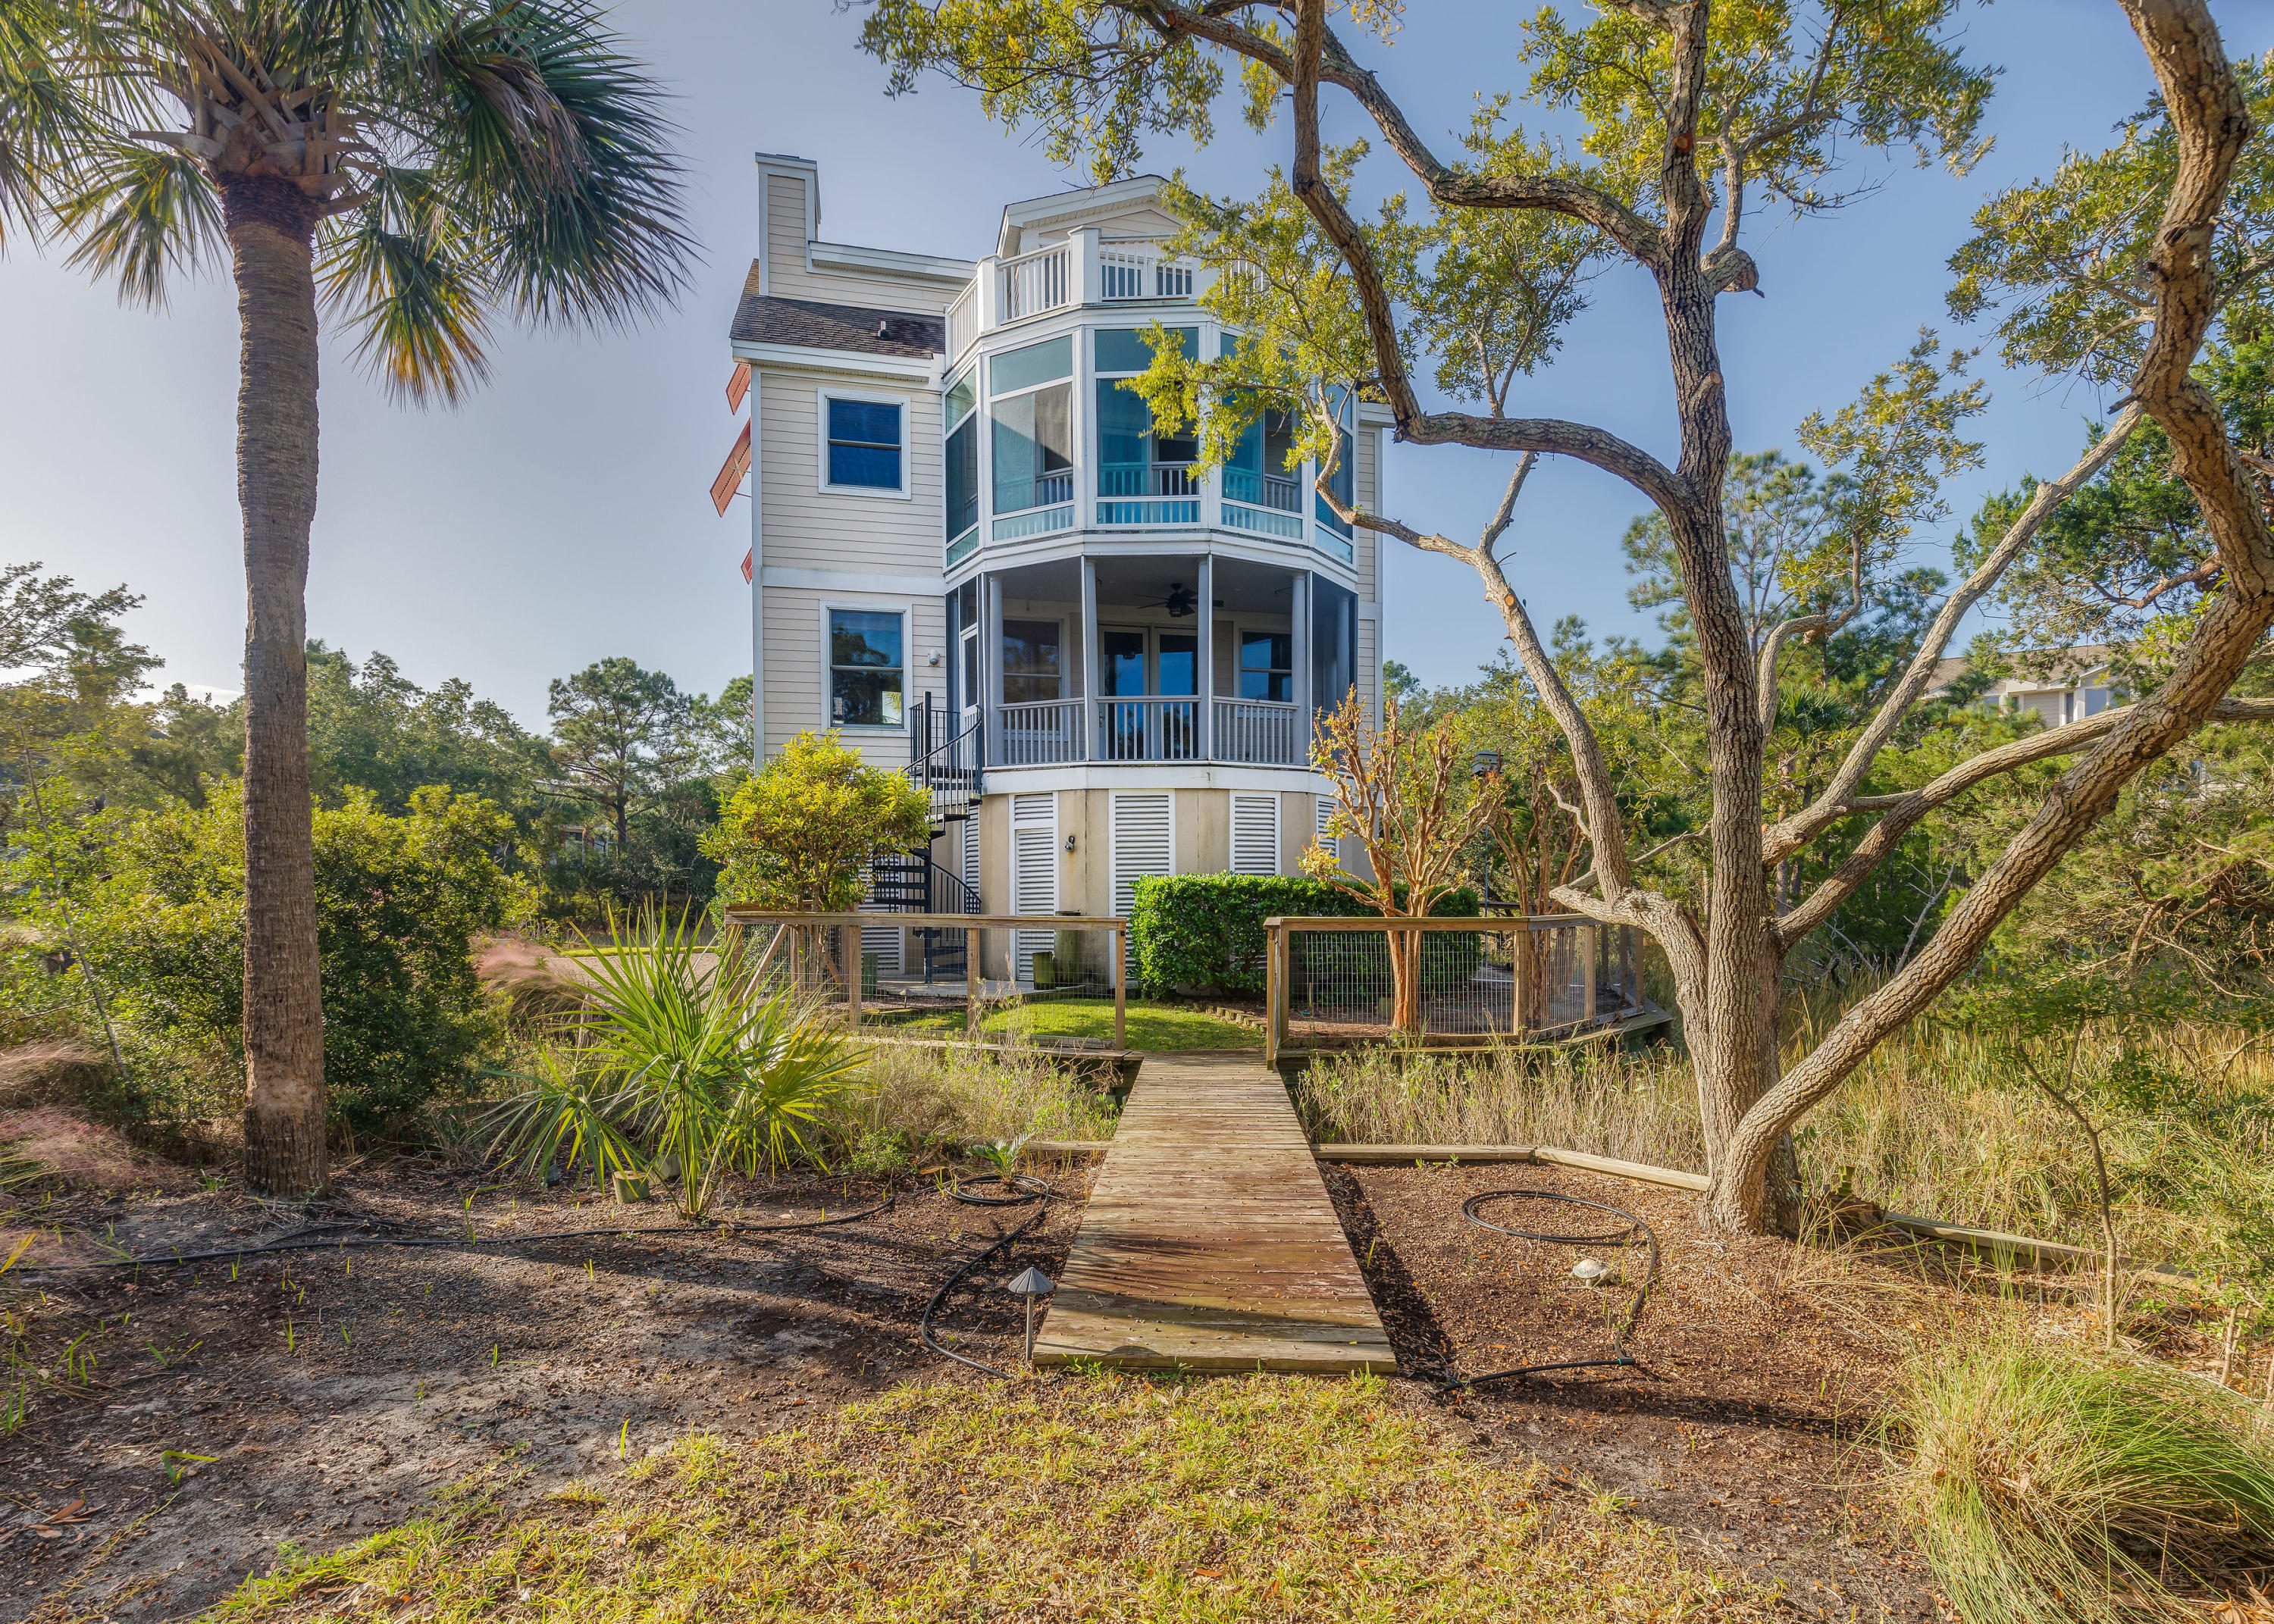 Wild Dunes Homes For Sale - 42 Seagrass, Isle of Palms, SC - 3